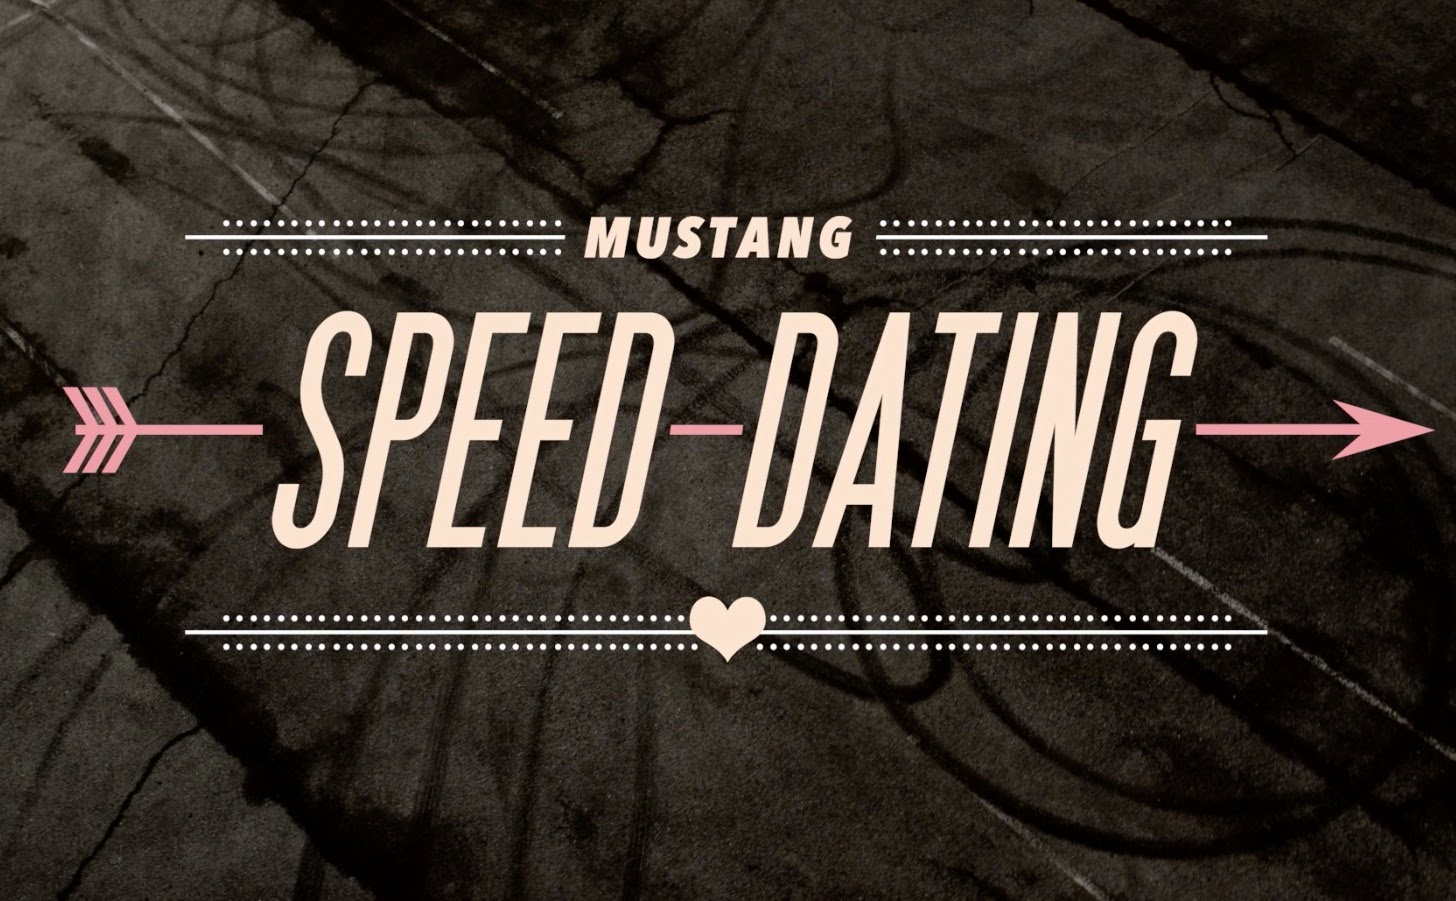 Mustang dating commercial